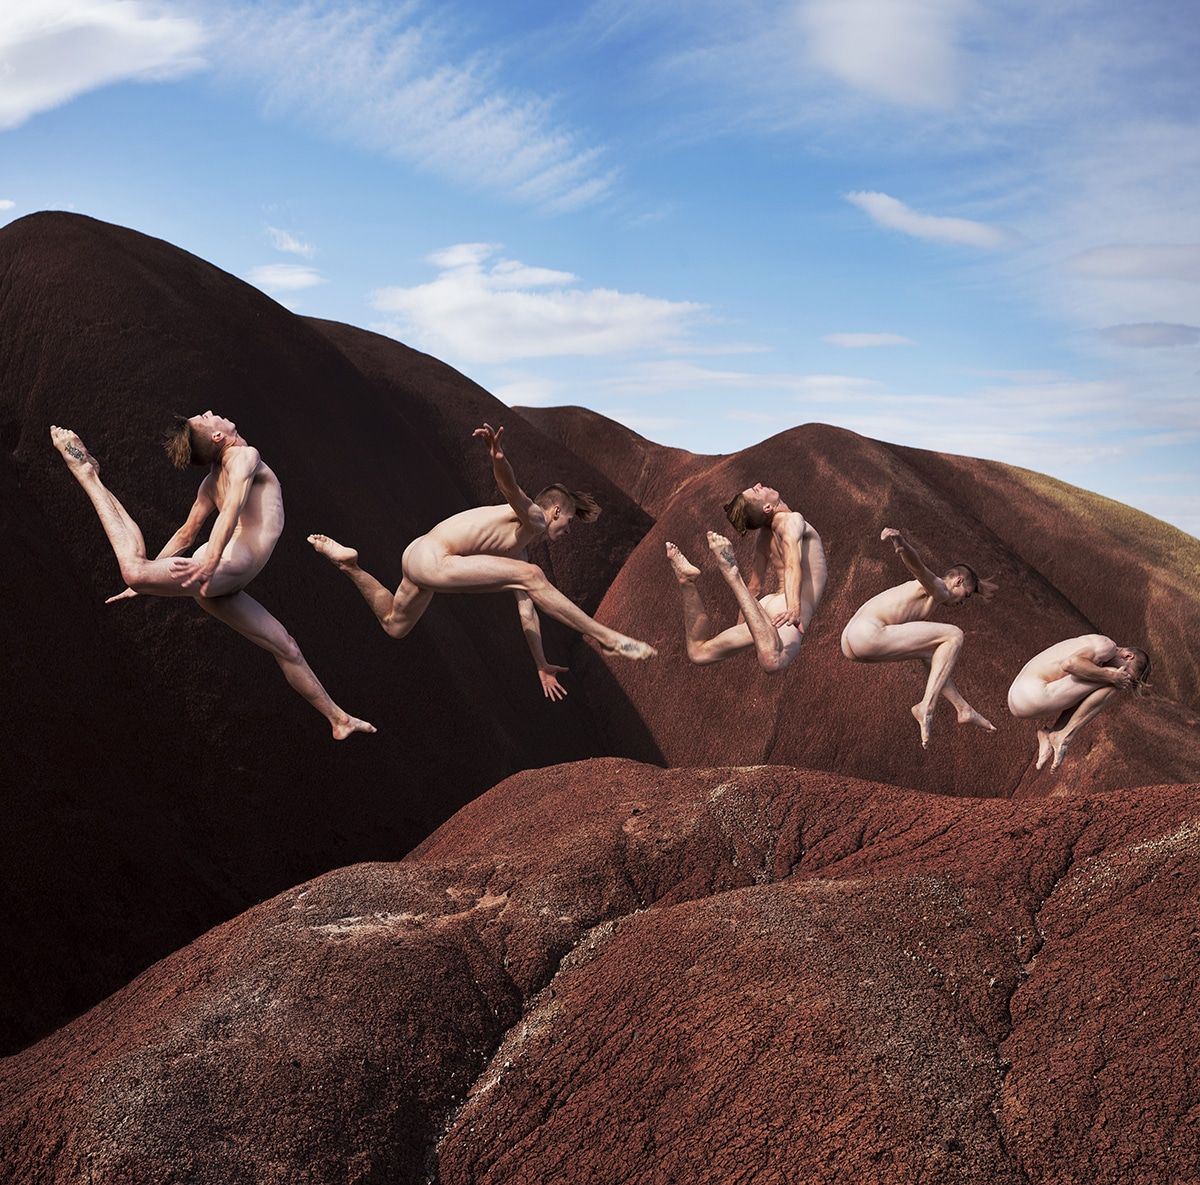 Gravity Defying Photos Of Dancers In Dynamic Positions Celebrate The Power Of The Human Body Human Body Body Photography Human Body Photography